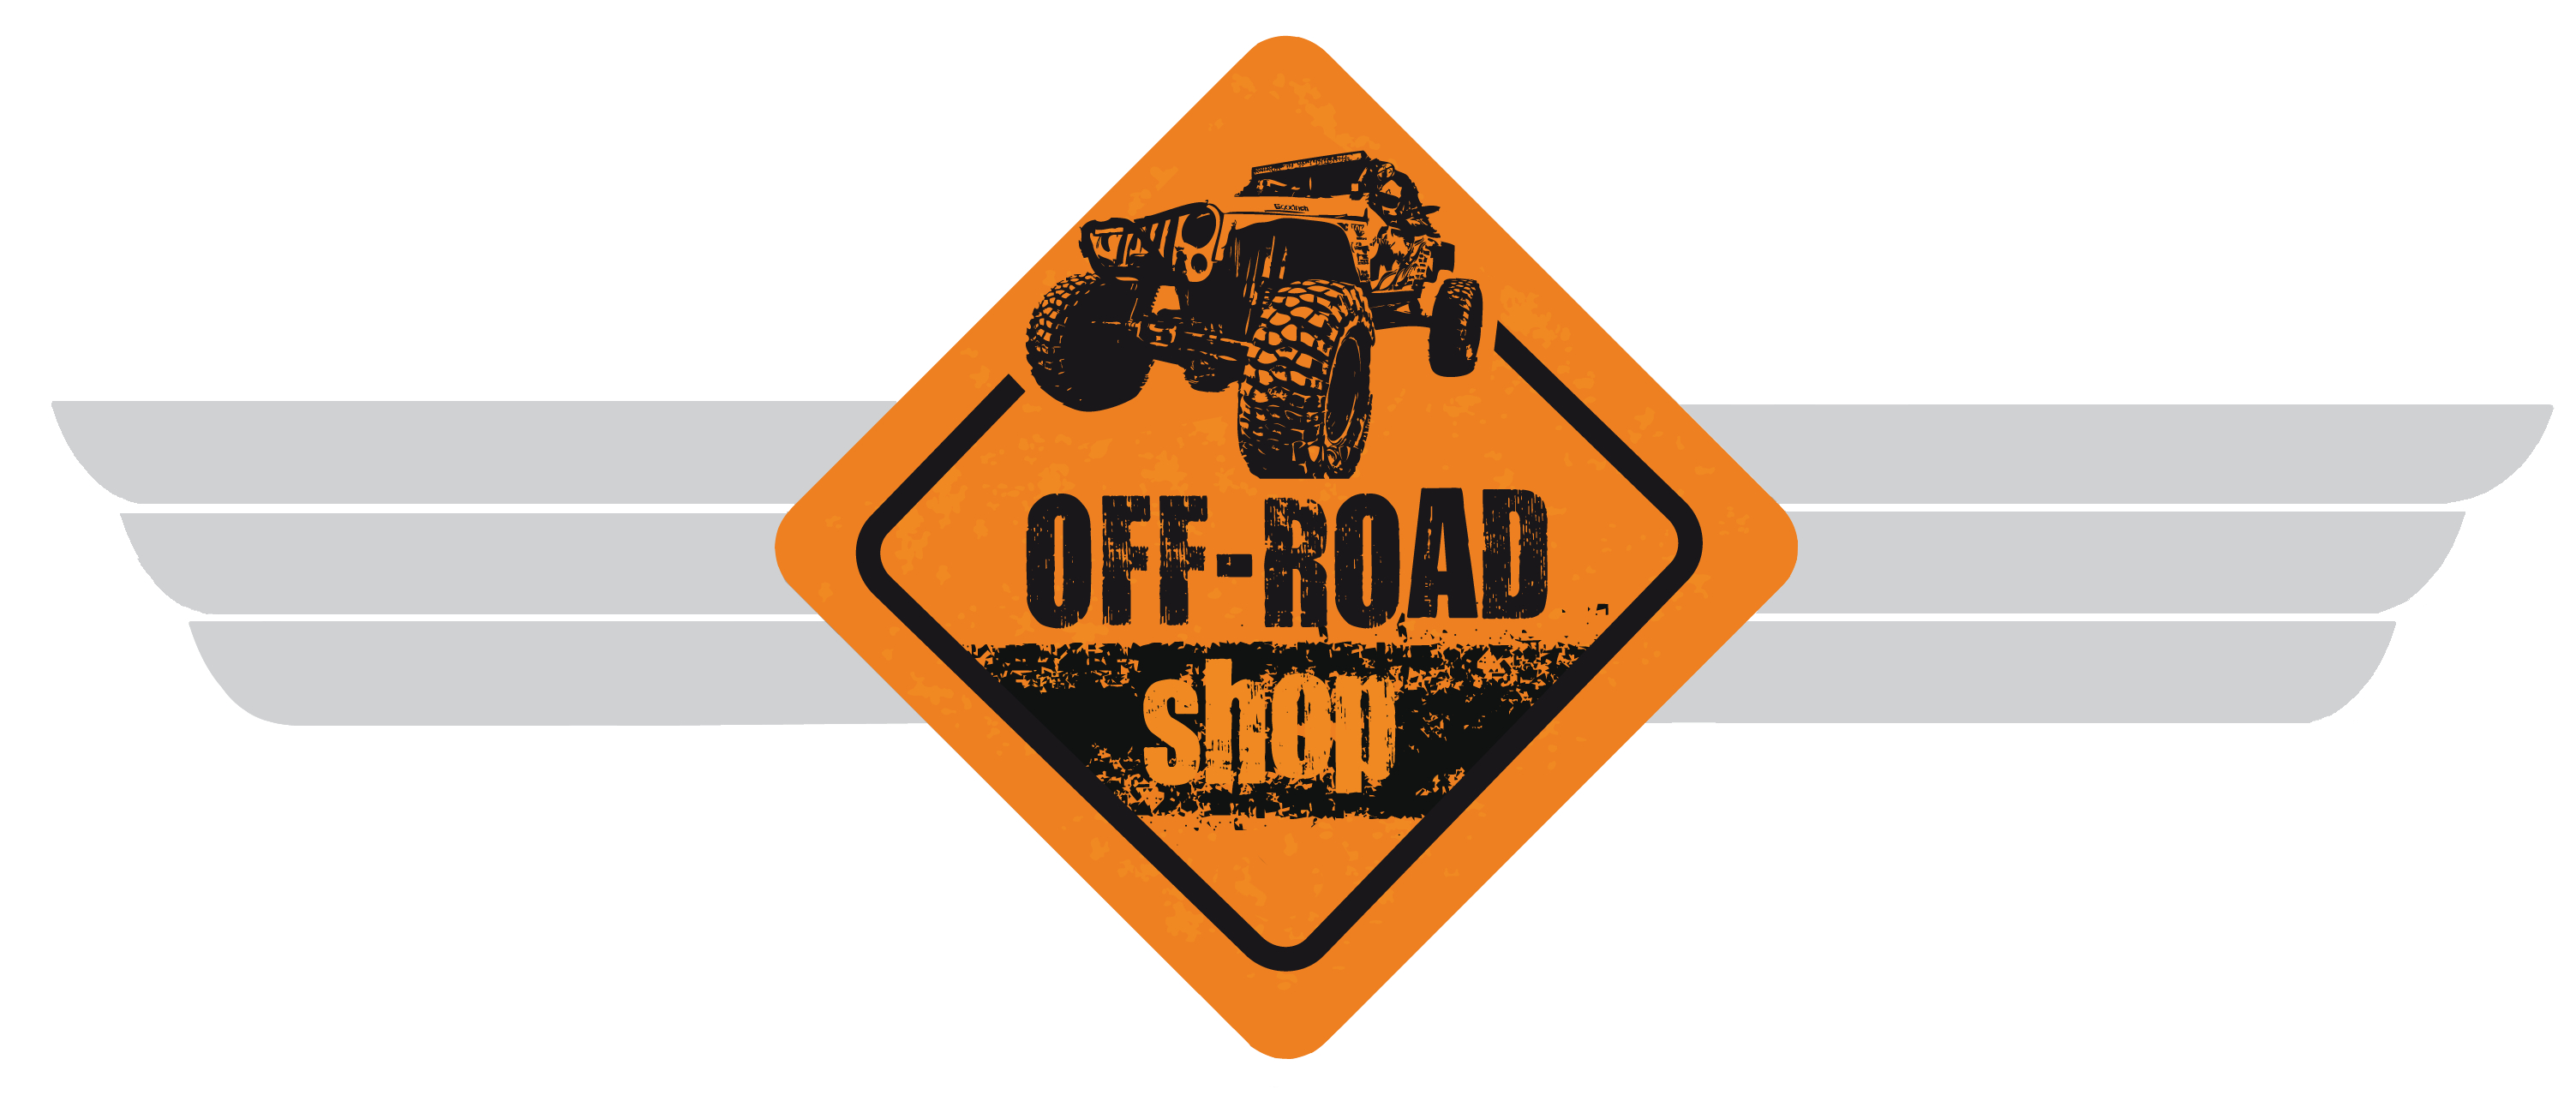 Off Road Shop